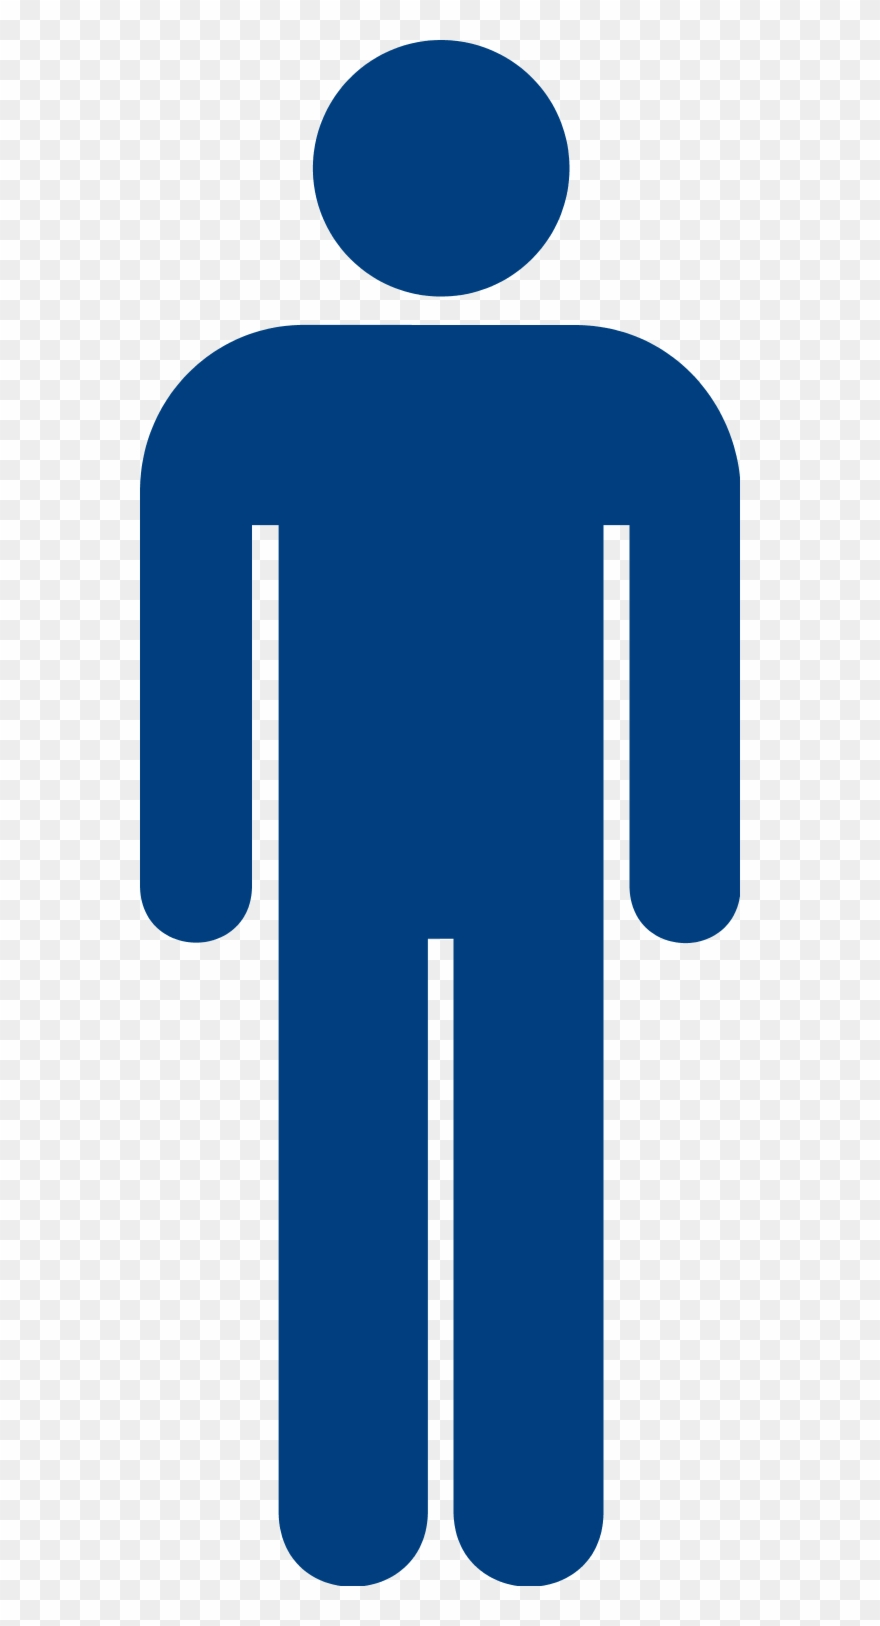 Male clipart. Blue mens toilet sign